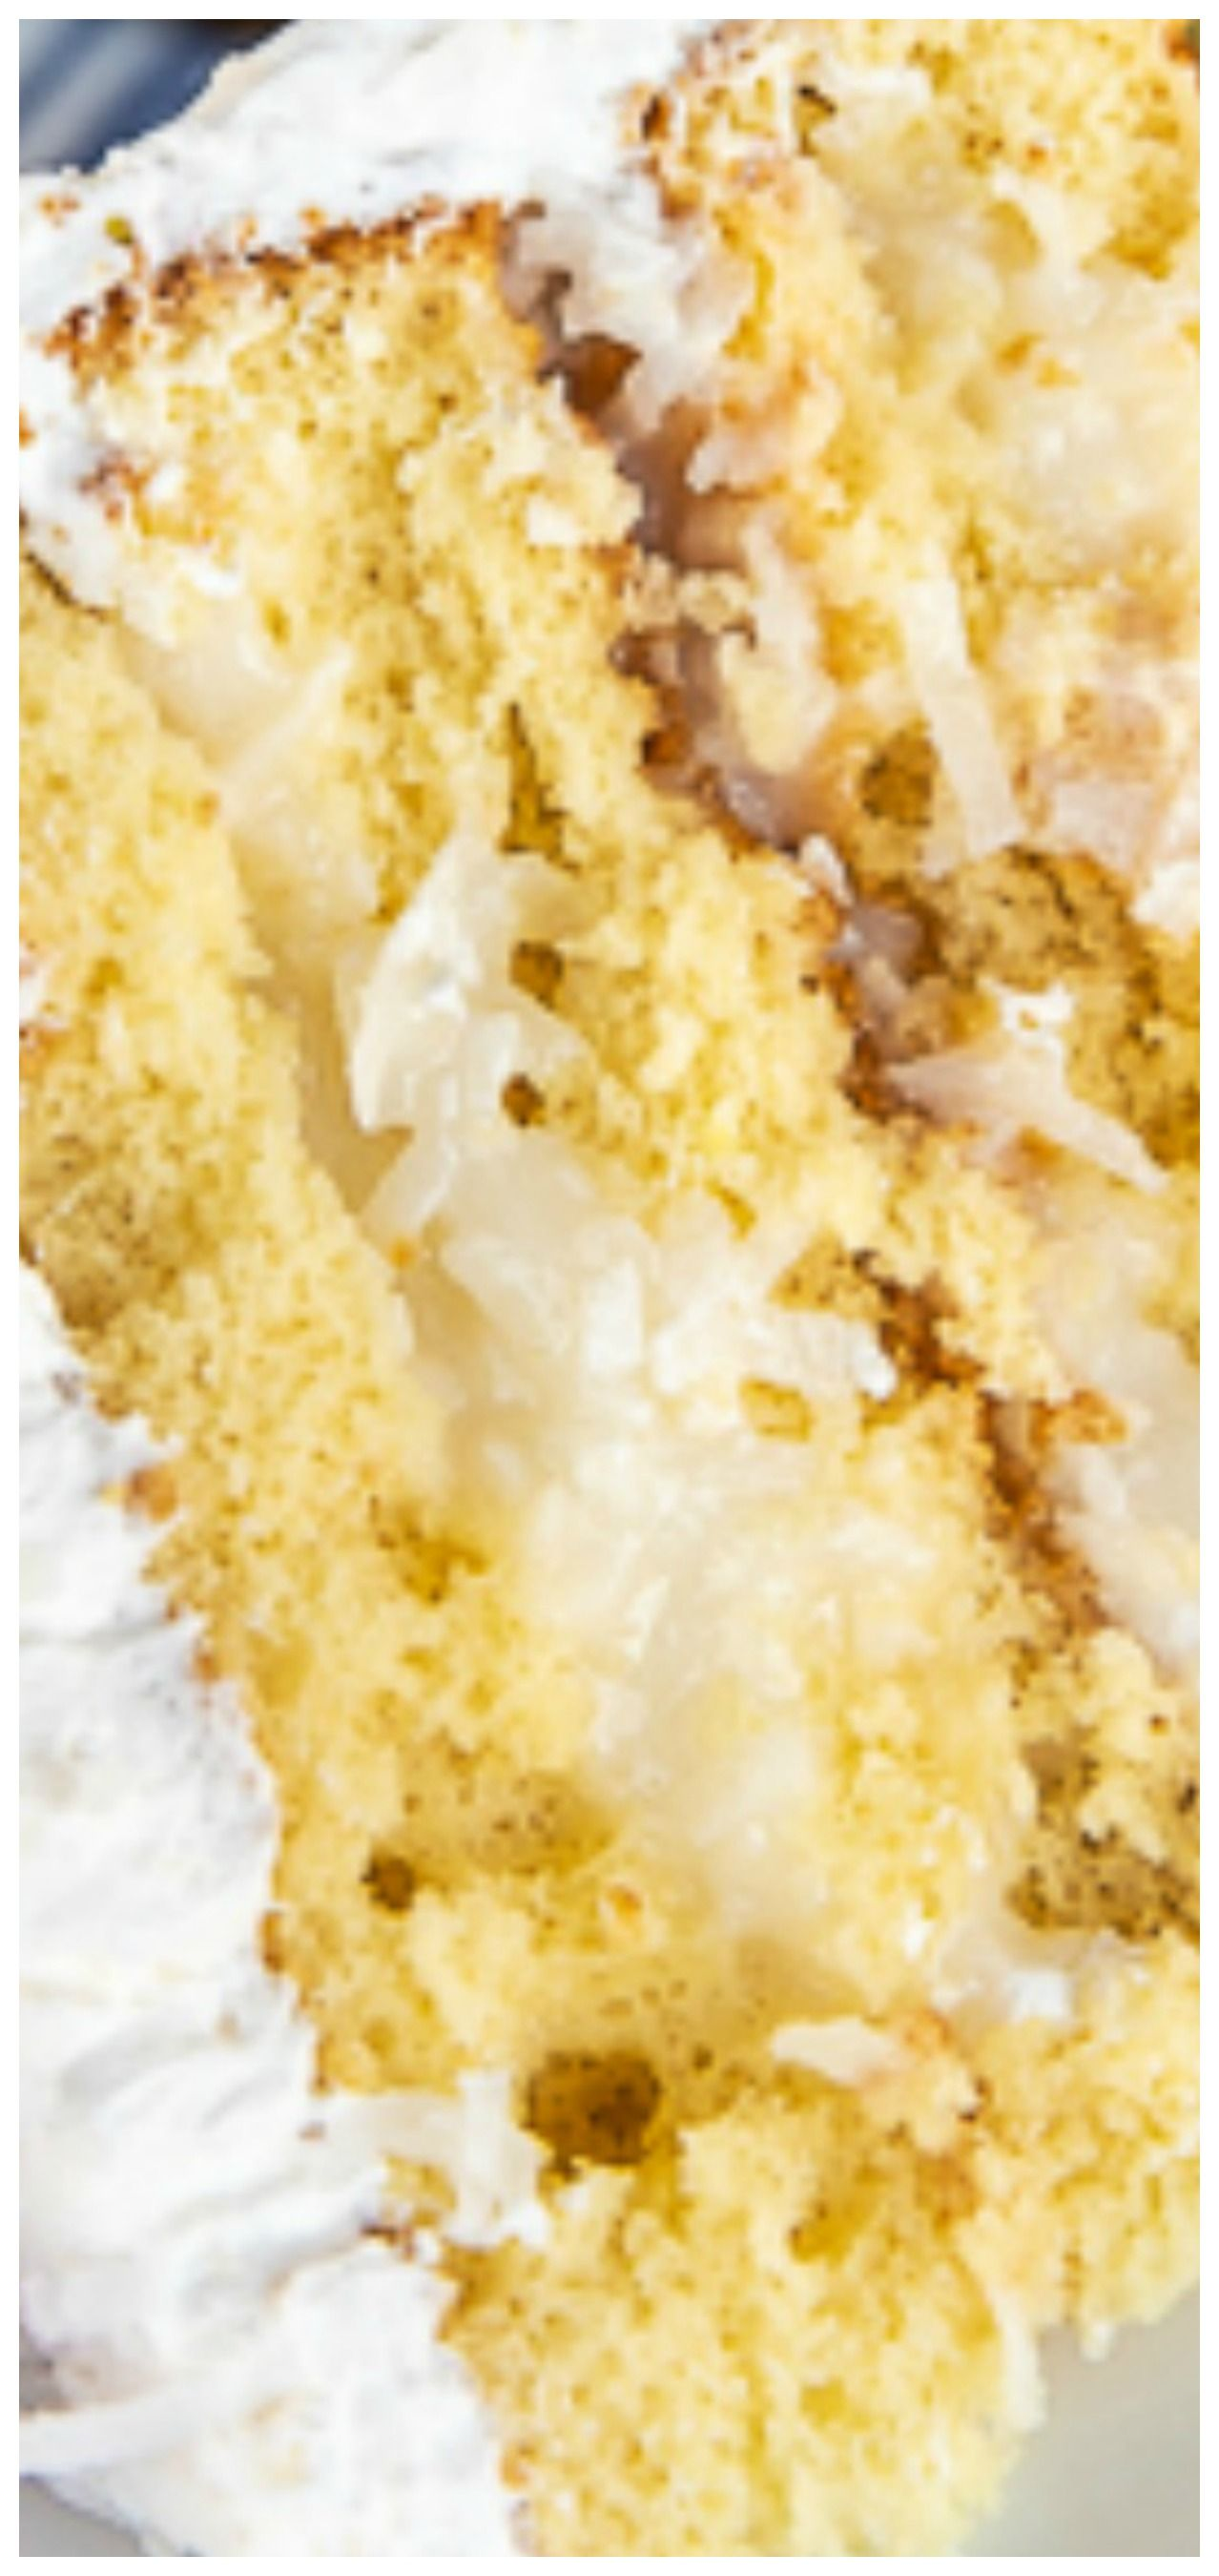 Coconut cake amazing so easy to make and everyone